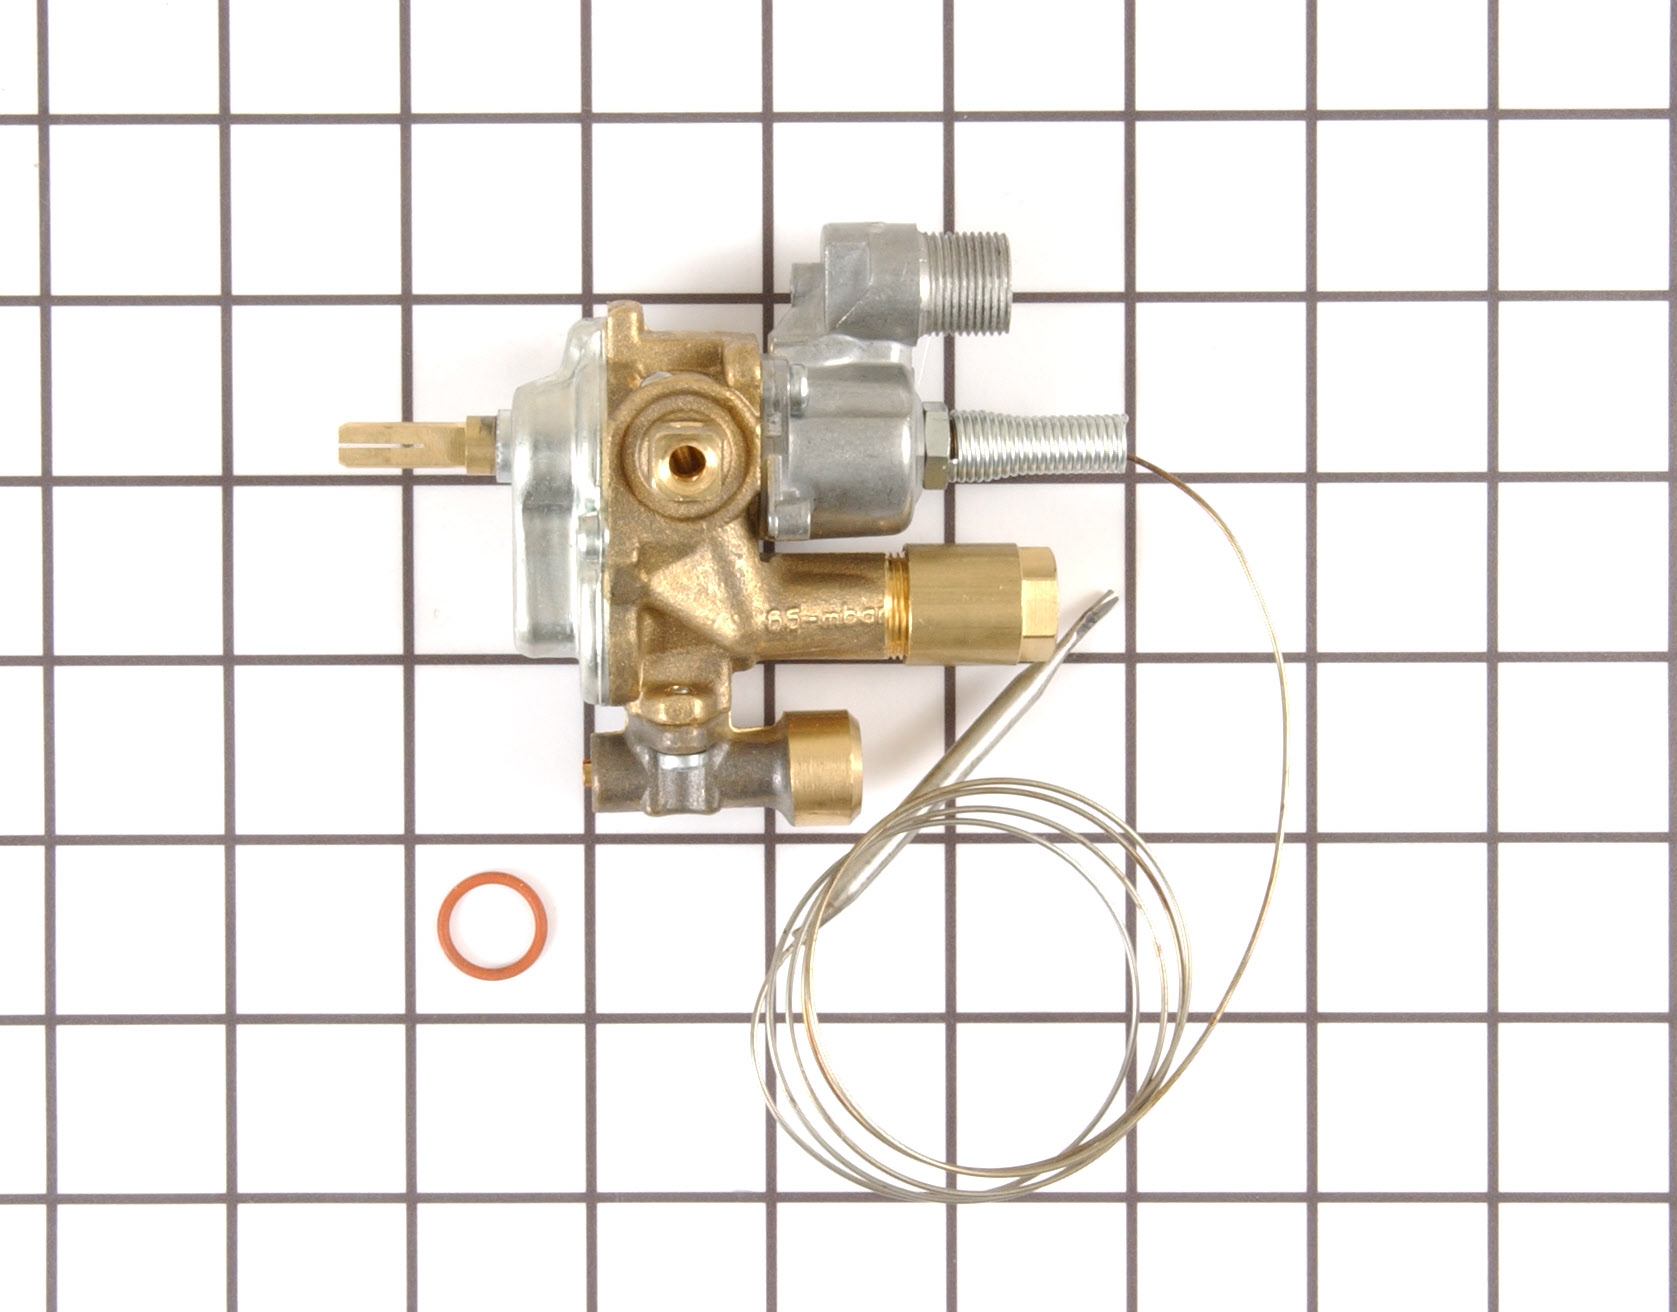 GE Range/Stove/Oven Part # WB20K10013 - Temperature Control Thermostat